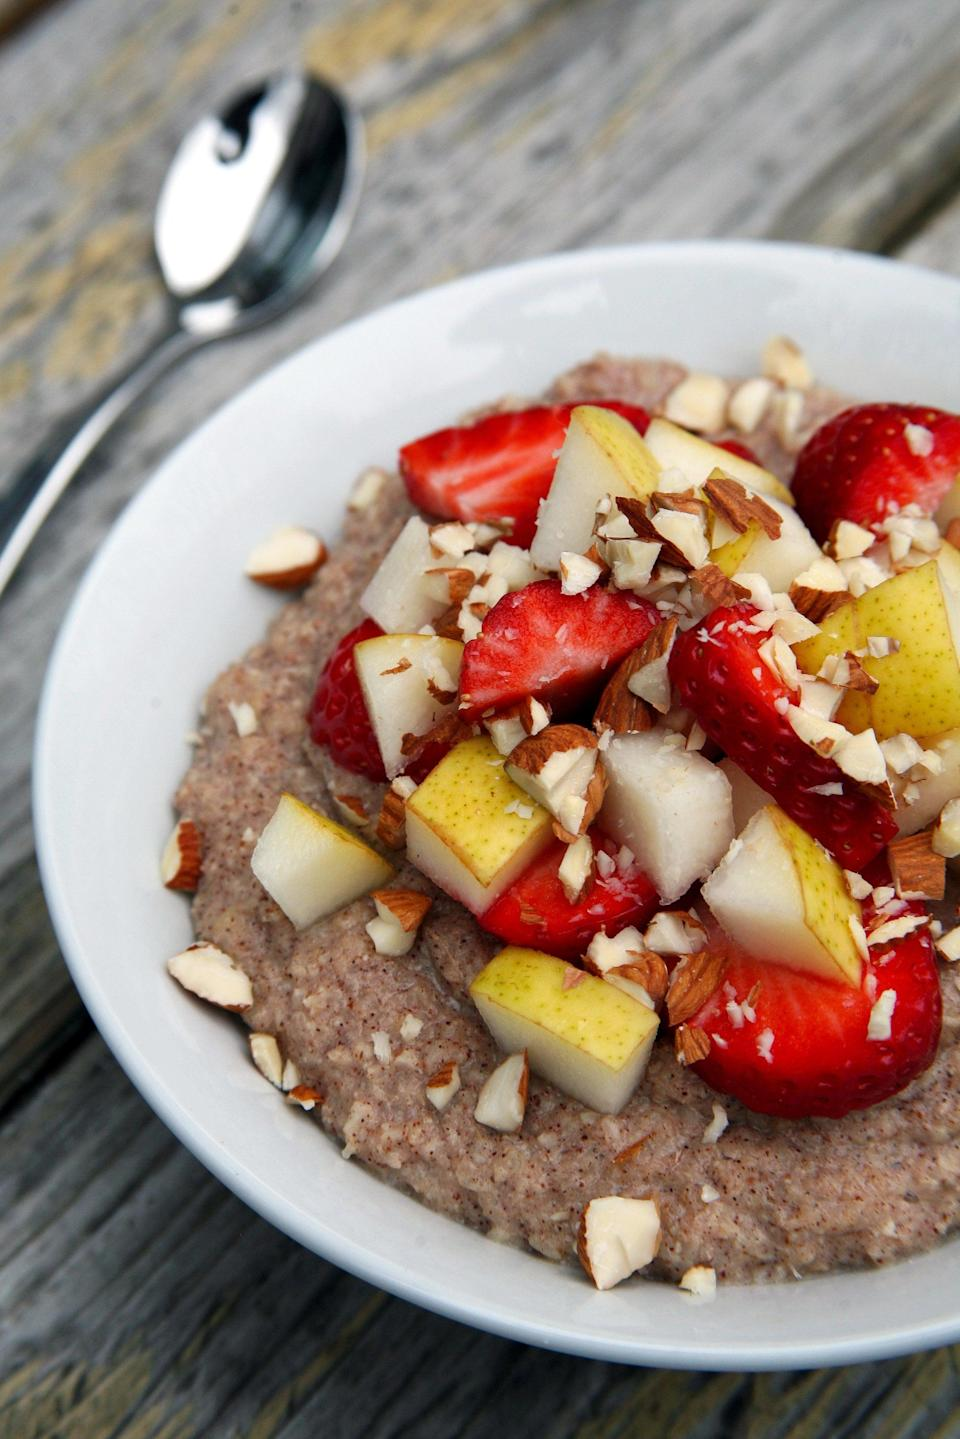 """<p>If you love oatmeal, you've got to try this version made with cauliflower. Sounds weird, but once cooked and flavored, it tastes remarkably like oatmeal - honest! This bowl is topped with fresh strawberries, pears, and chopped raw almonds. </p> <p><strong>Get the recipe:</strong> <a href=""""https://www.popsugar.com/fitness/Cauliflower-Porridge-40585823"""" class=""""link rapid-noclick-resp"""" rel=""""nofollow noopener"""" target=""""_blank"""" data-ylk=""""slk:cauliflower porridge"""">cauliflower porridge</a></p>"""